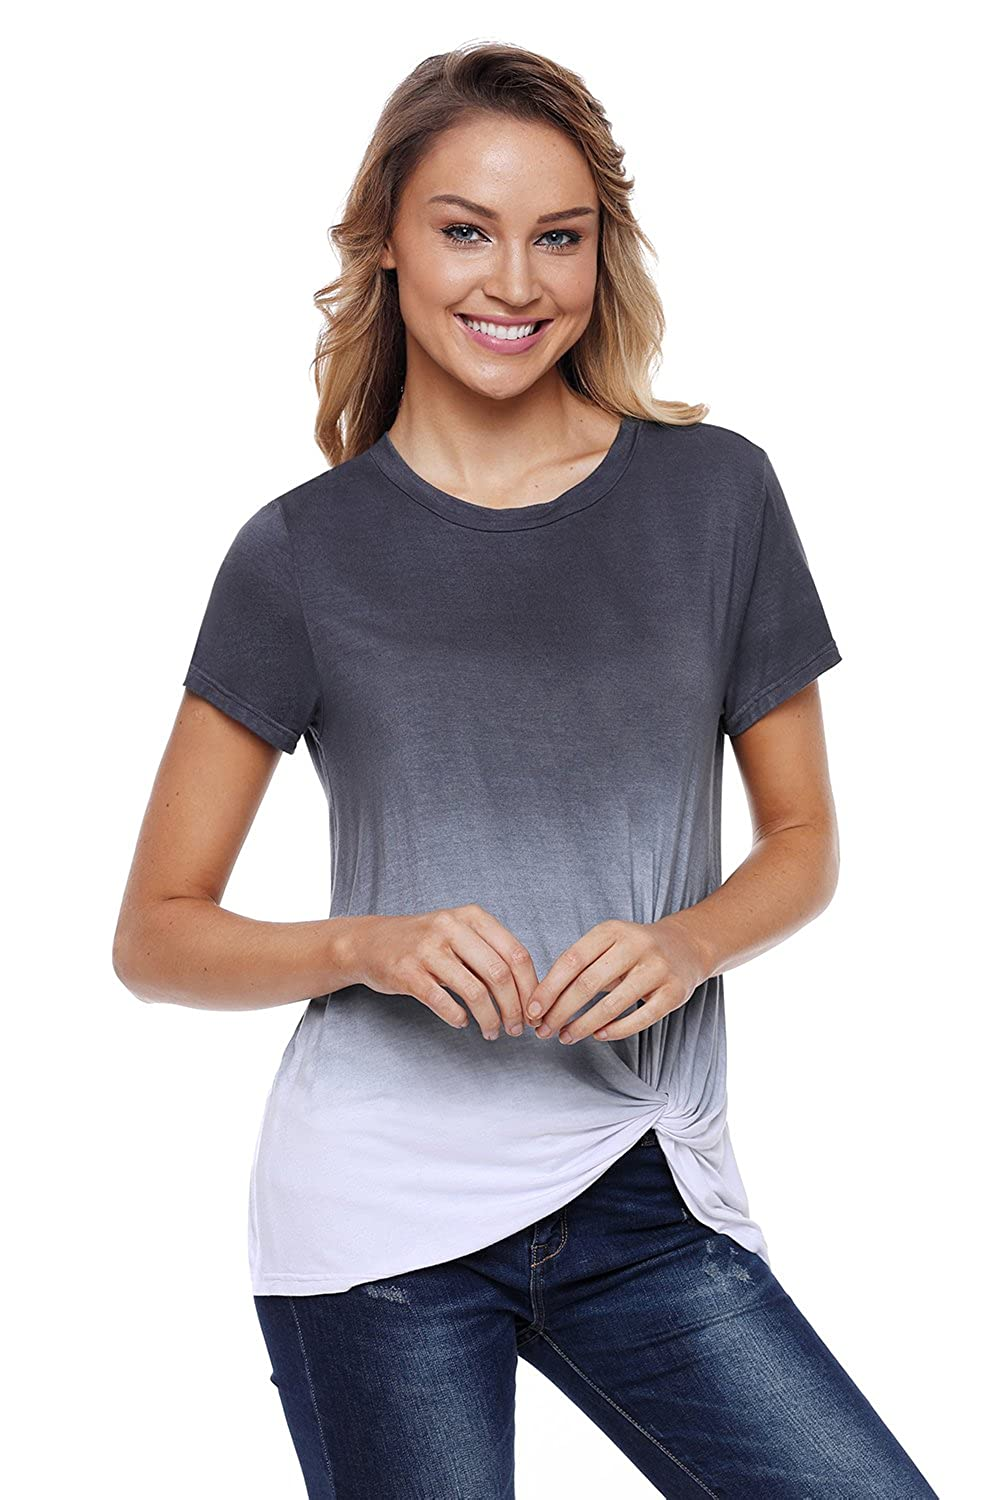 0ba745377 Casual chic to pair with jeans, pants and leggings. Fitted silhouette,  round neck and short sleeves. Specifications Style: Fashion Occasion: Summer